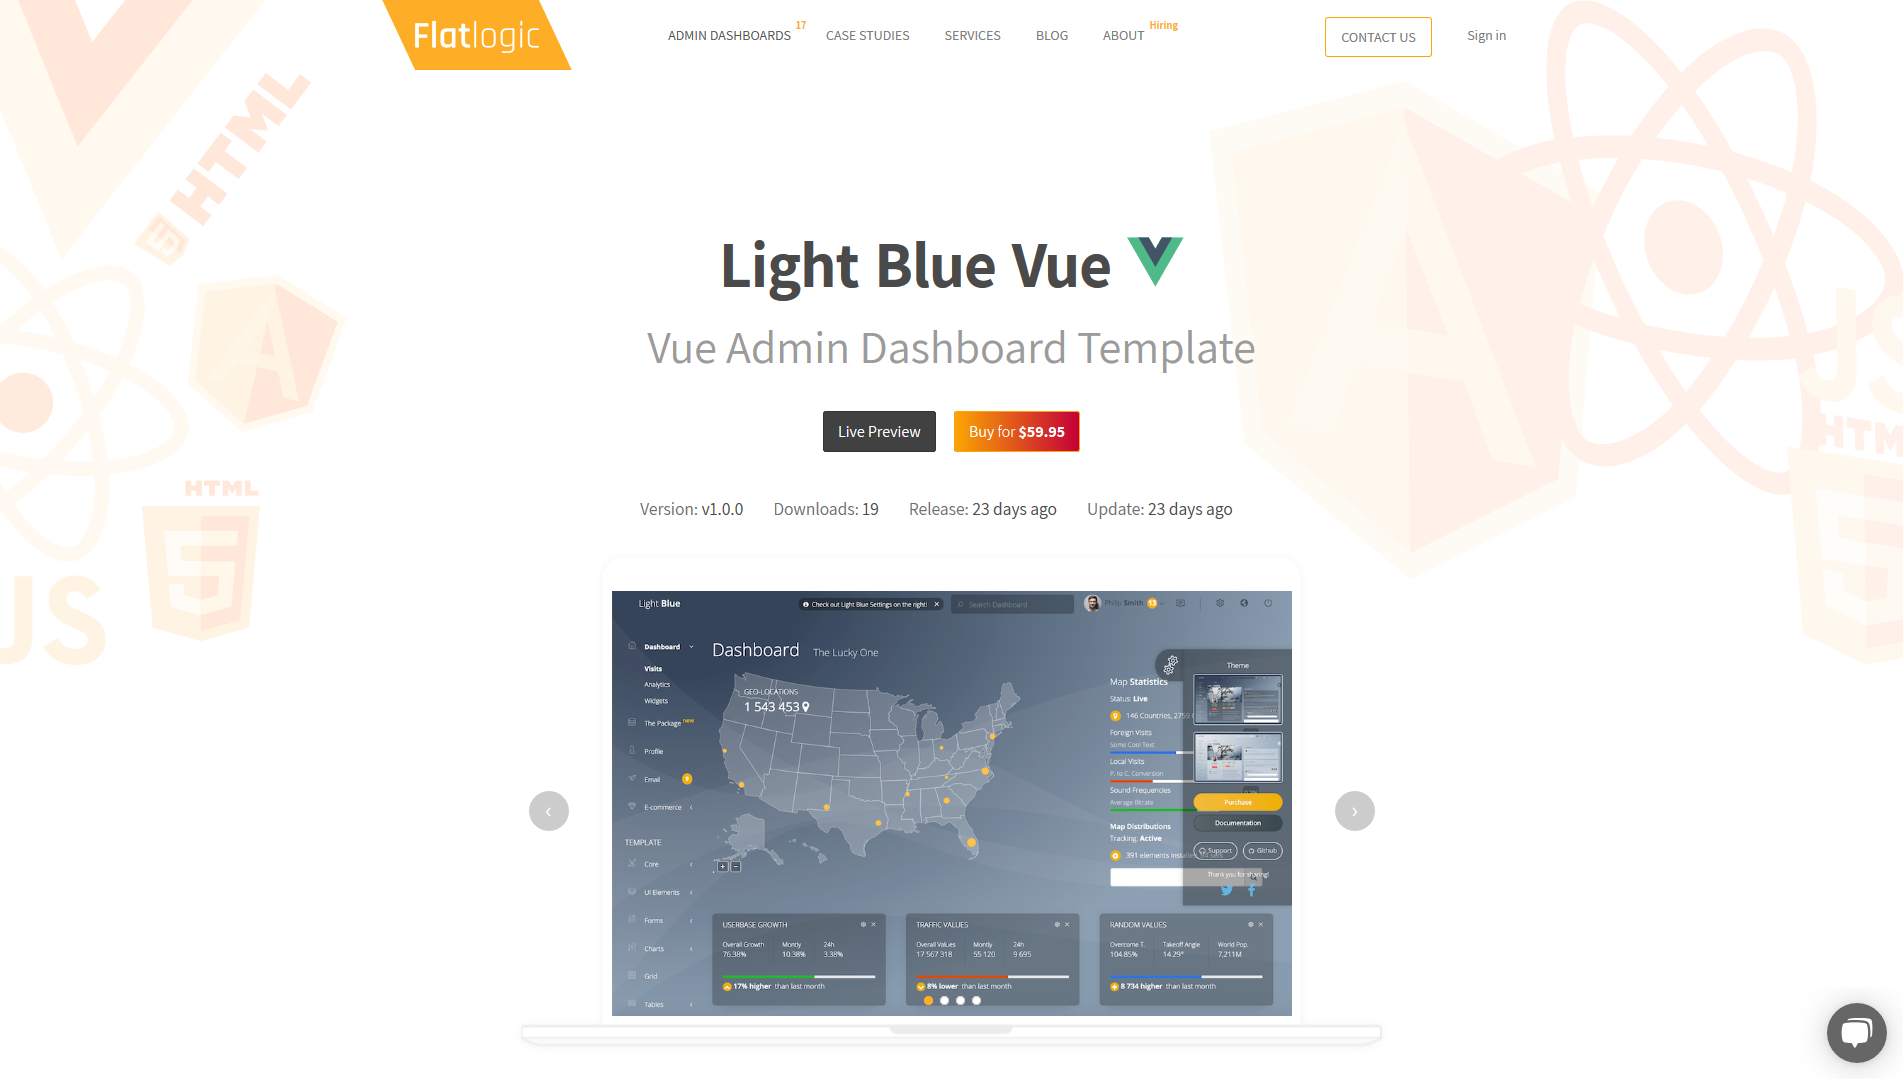 Light Blue Vue Admin - Vue js Dashboard Template built with Bootstrap, Vuex and Vue Router Flatlogic